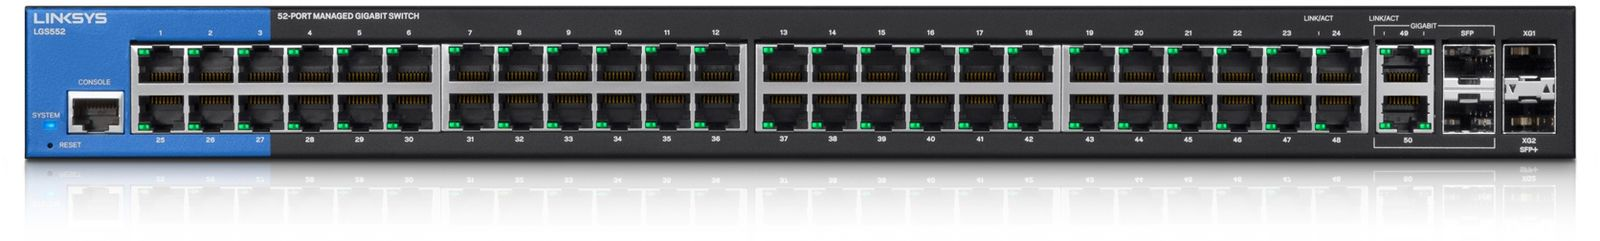 LINKSYS BY CISCO LGS552-EU Managed Switches 48-port (2 SPF